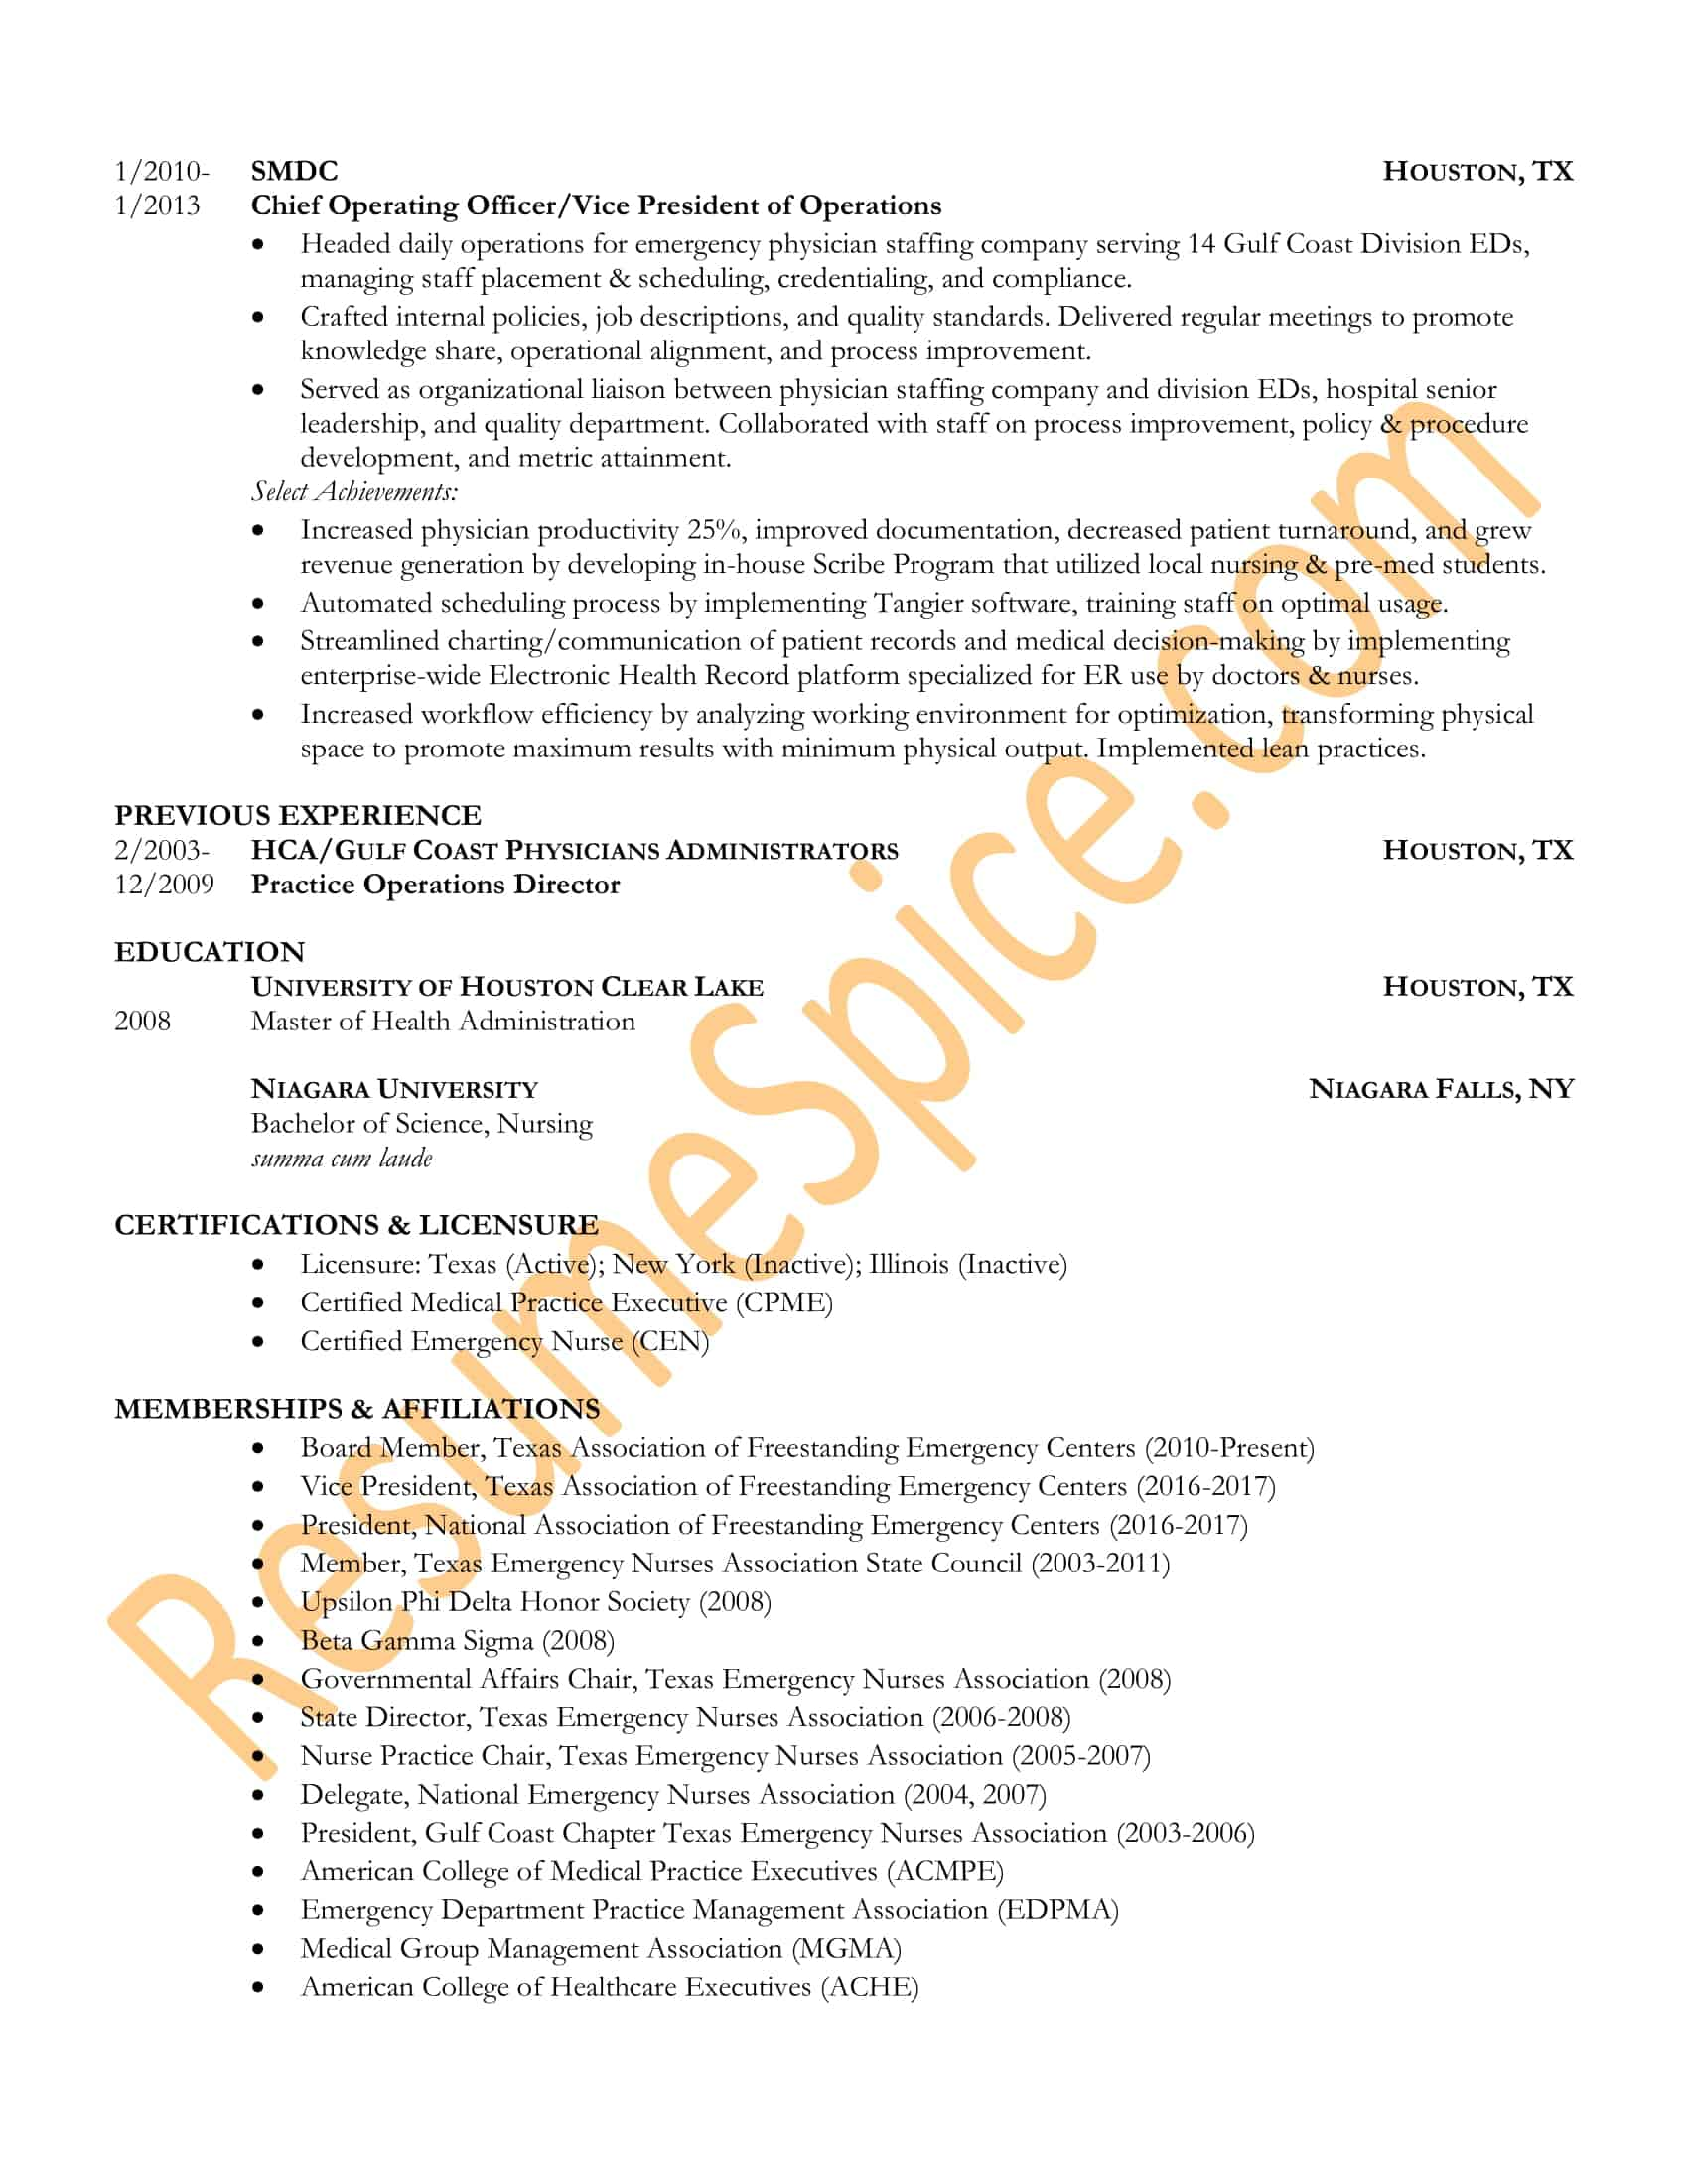 Mf-Executive_Resume-Business_Development_&_Operational_Management_Executive-Page_2